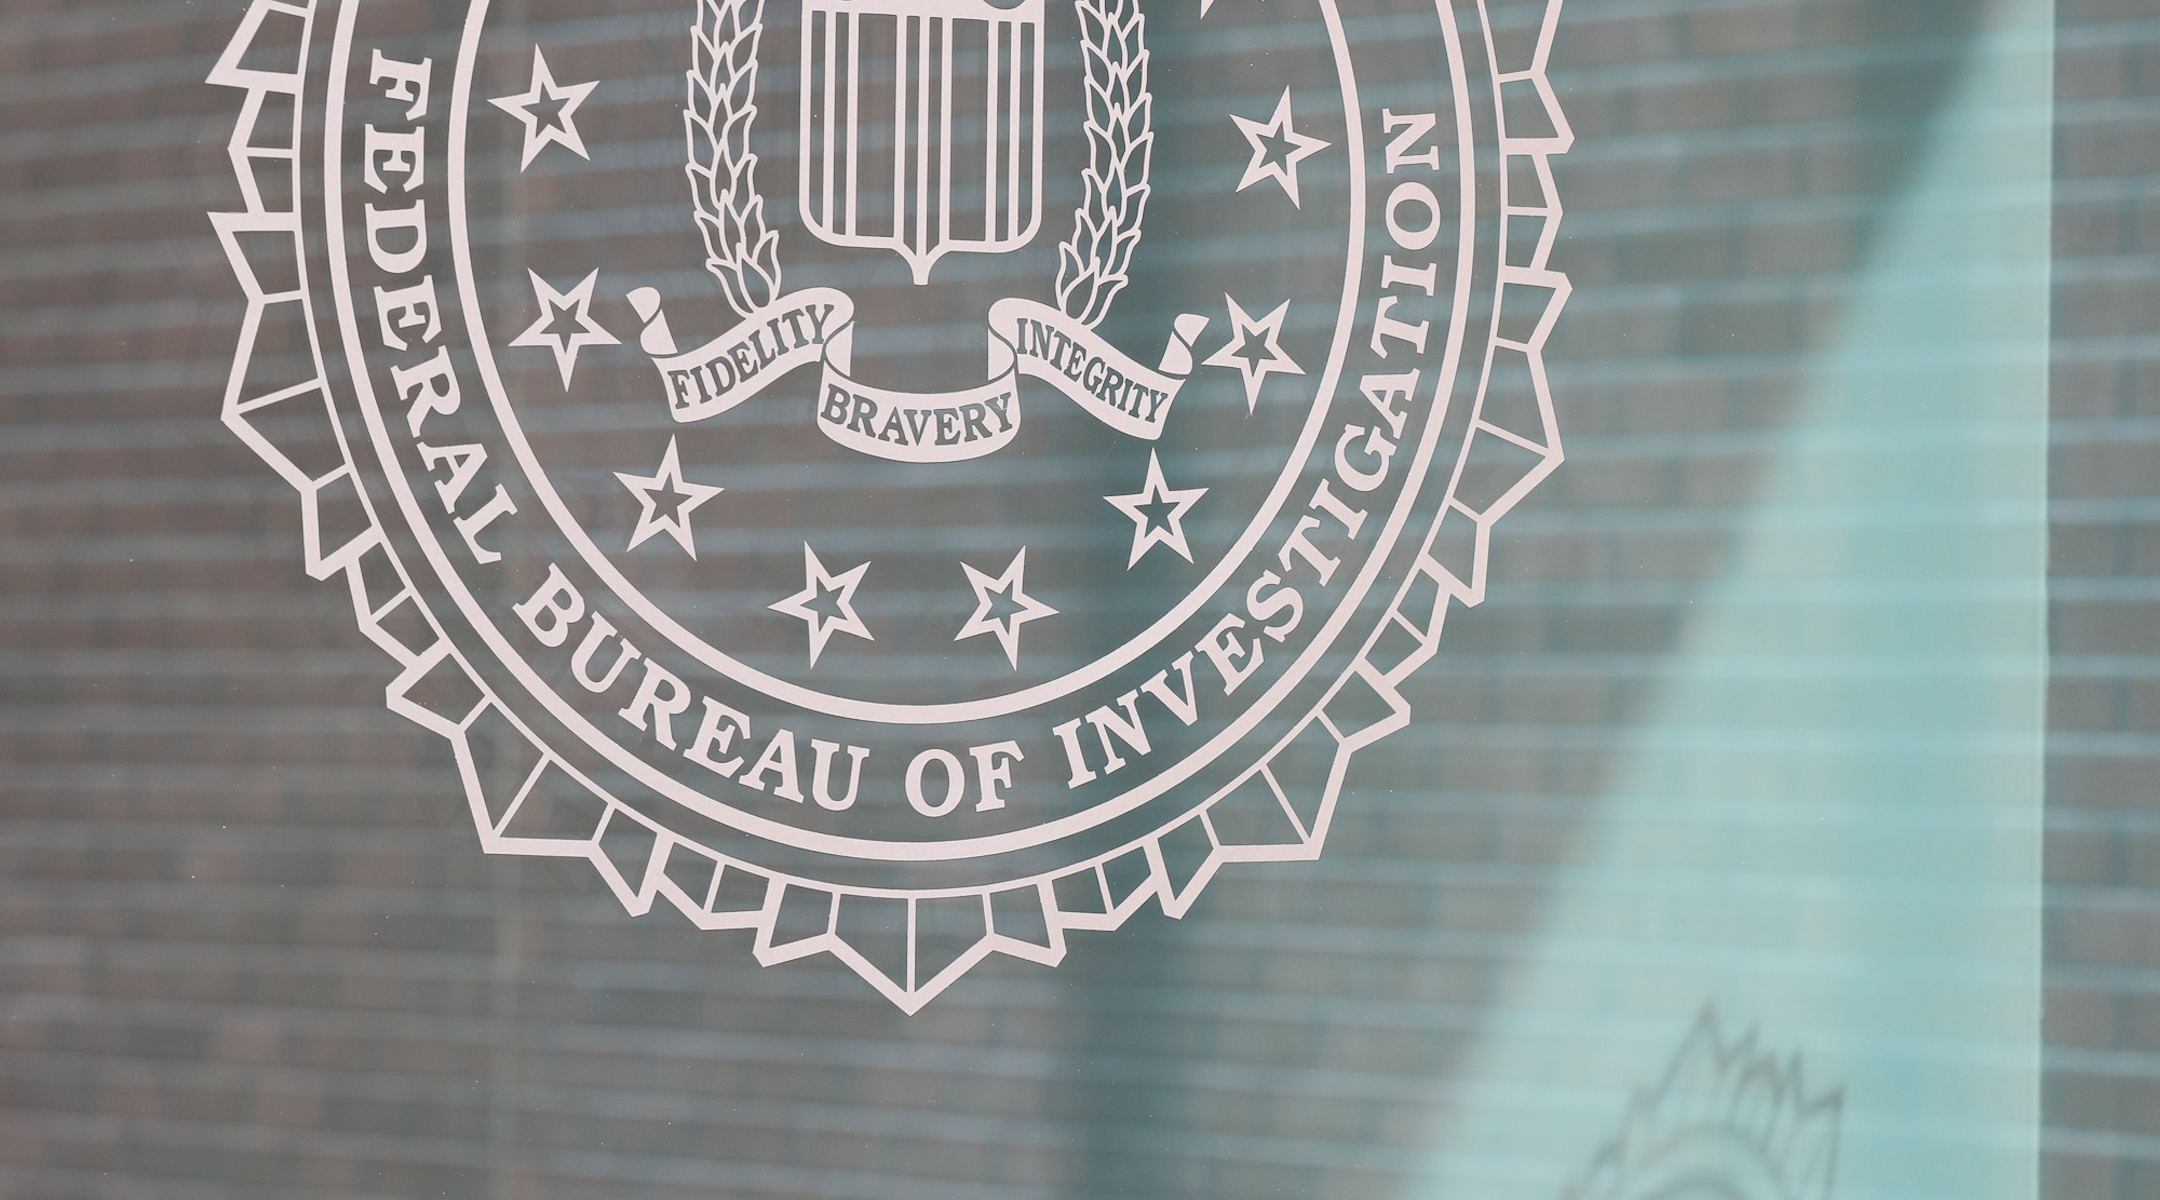 The FBI logo on the outside of a building